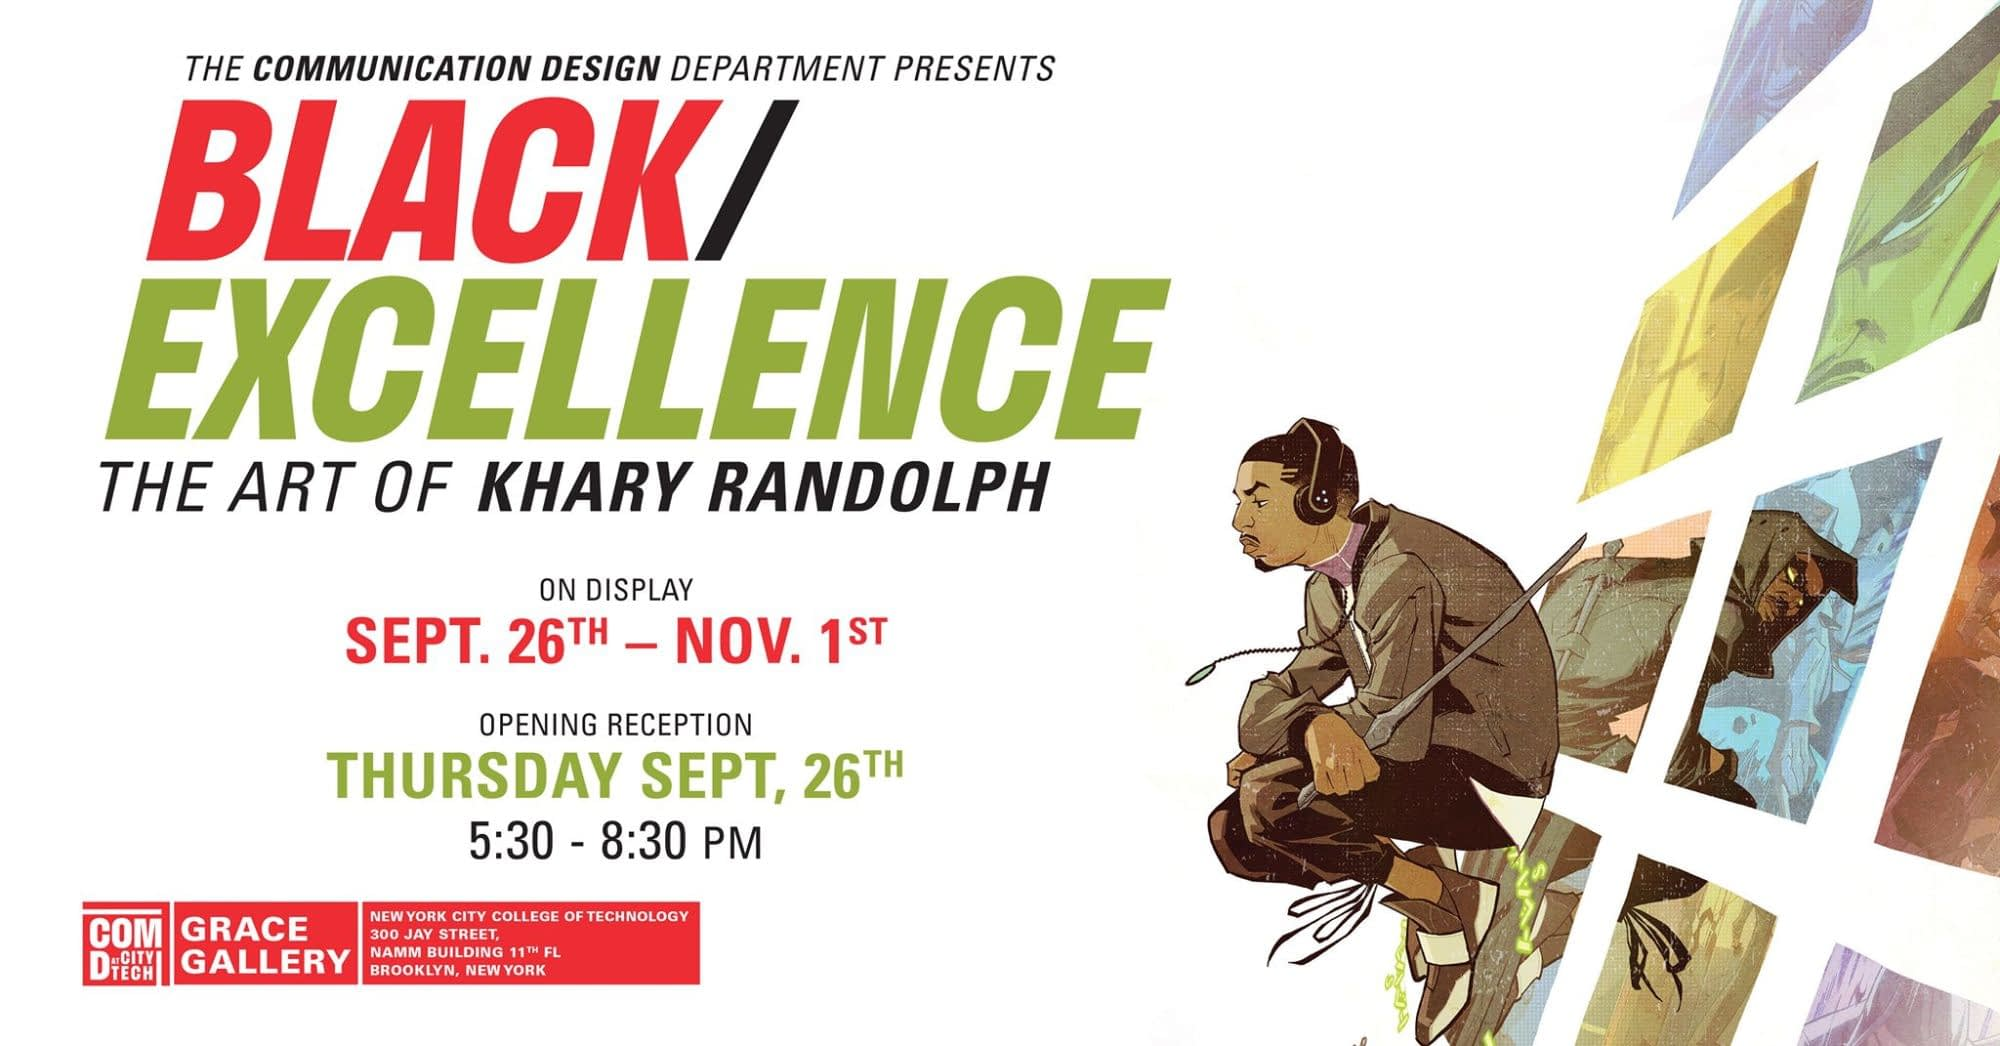 Getting to Know Black / Excellence with Khary Randolph